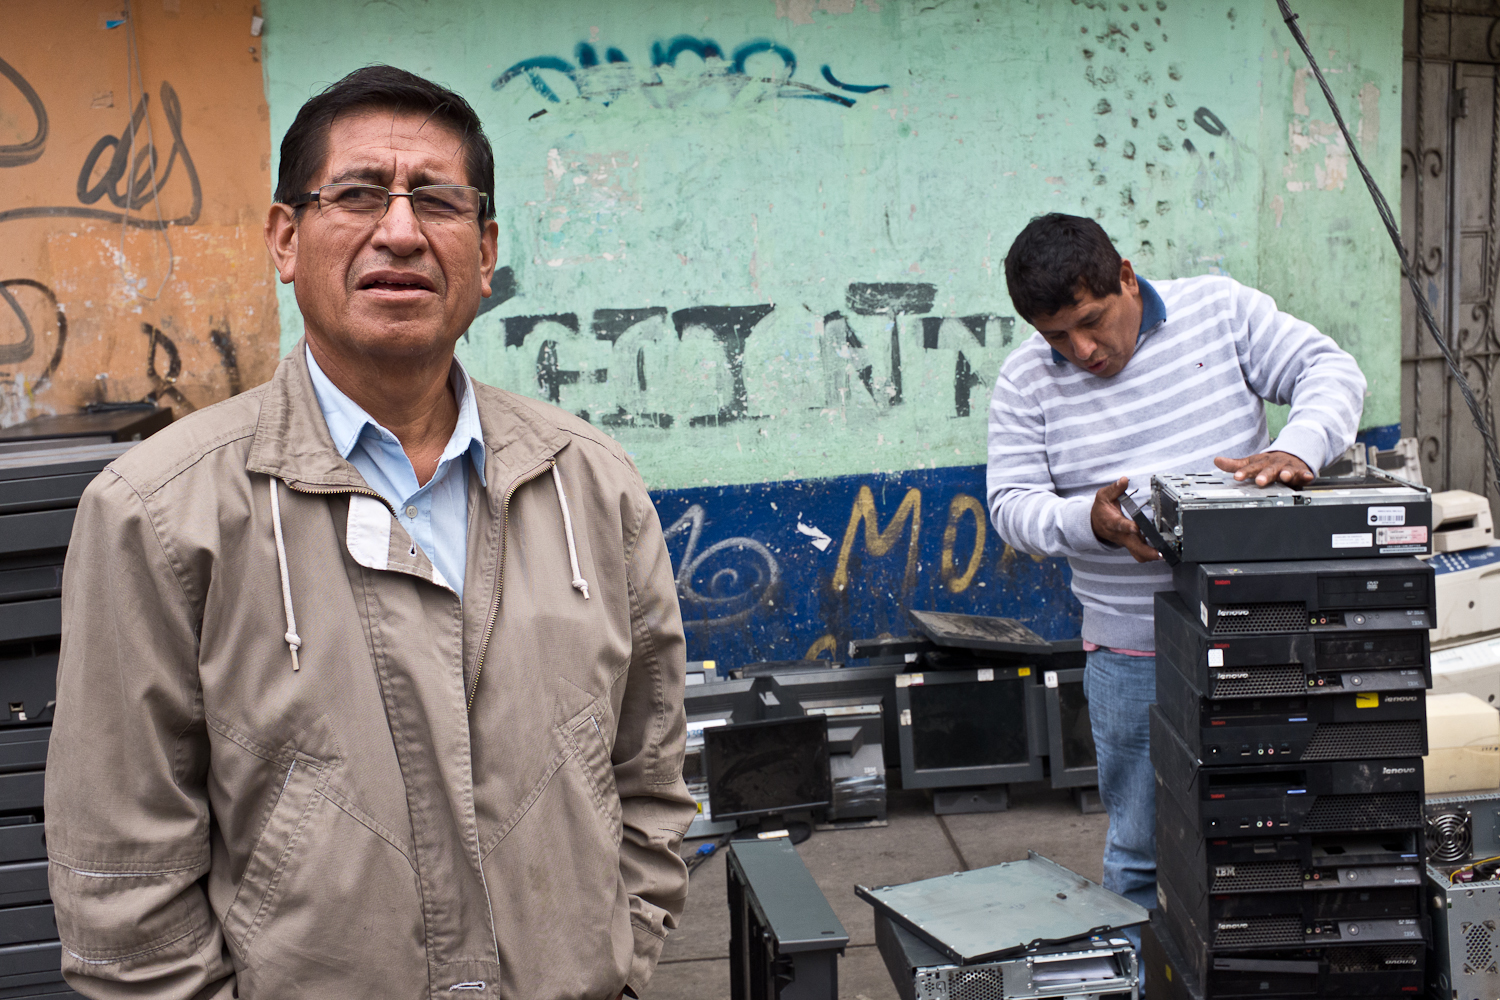 Senor Freddy (left) has been selling used electronics on Leticia street for nearly a decade. When asked why collectors and resellers such as himself don't organize to establish a government-recognized union of informal collectors/refurbishers, he shrugged. {quote}It's too difficult to organize the other collectors.{quote} Other collectors and refurbishers noted that formalizing the informal sector would increase their costs, especially for disposing components such as CRTs that no longer have market value but contain hazardous materials that require safe handling. Other countries such as Brazil and India have formalized informal collectors and waste pickers into unions, thus providing the opportunity to engage more directly with other stakeholders in the formal sector.Nonetheless, another refurbished CRT TV vendor, Daniel Rodriguez (not shown) lamented, {quote}I wish the NGOs and government officials would recognize our importance in keeping these productsout of the environment by extending their use. But they don't want to work with us.{quote}